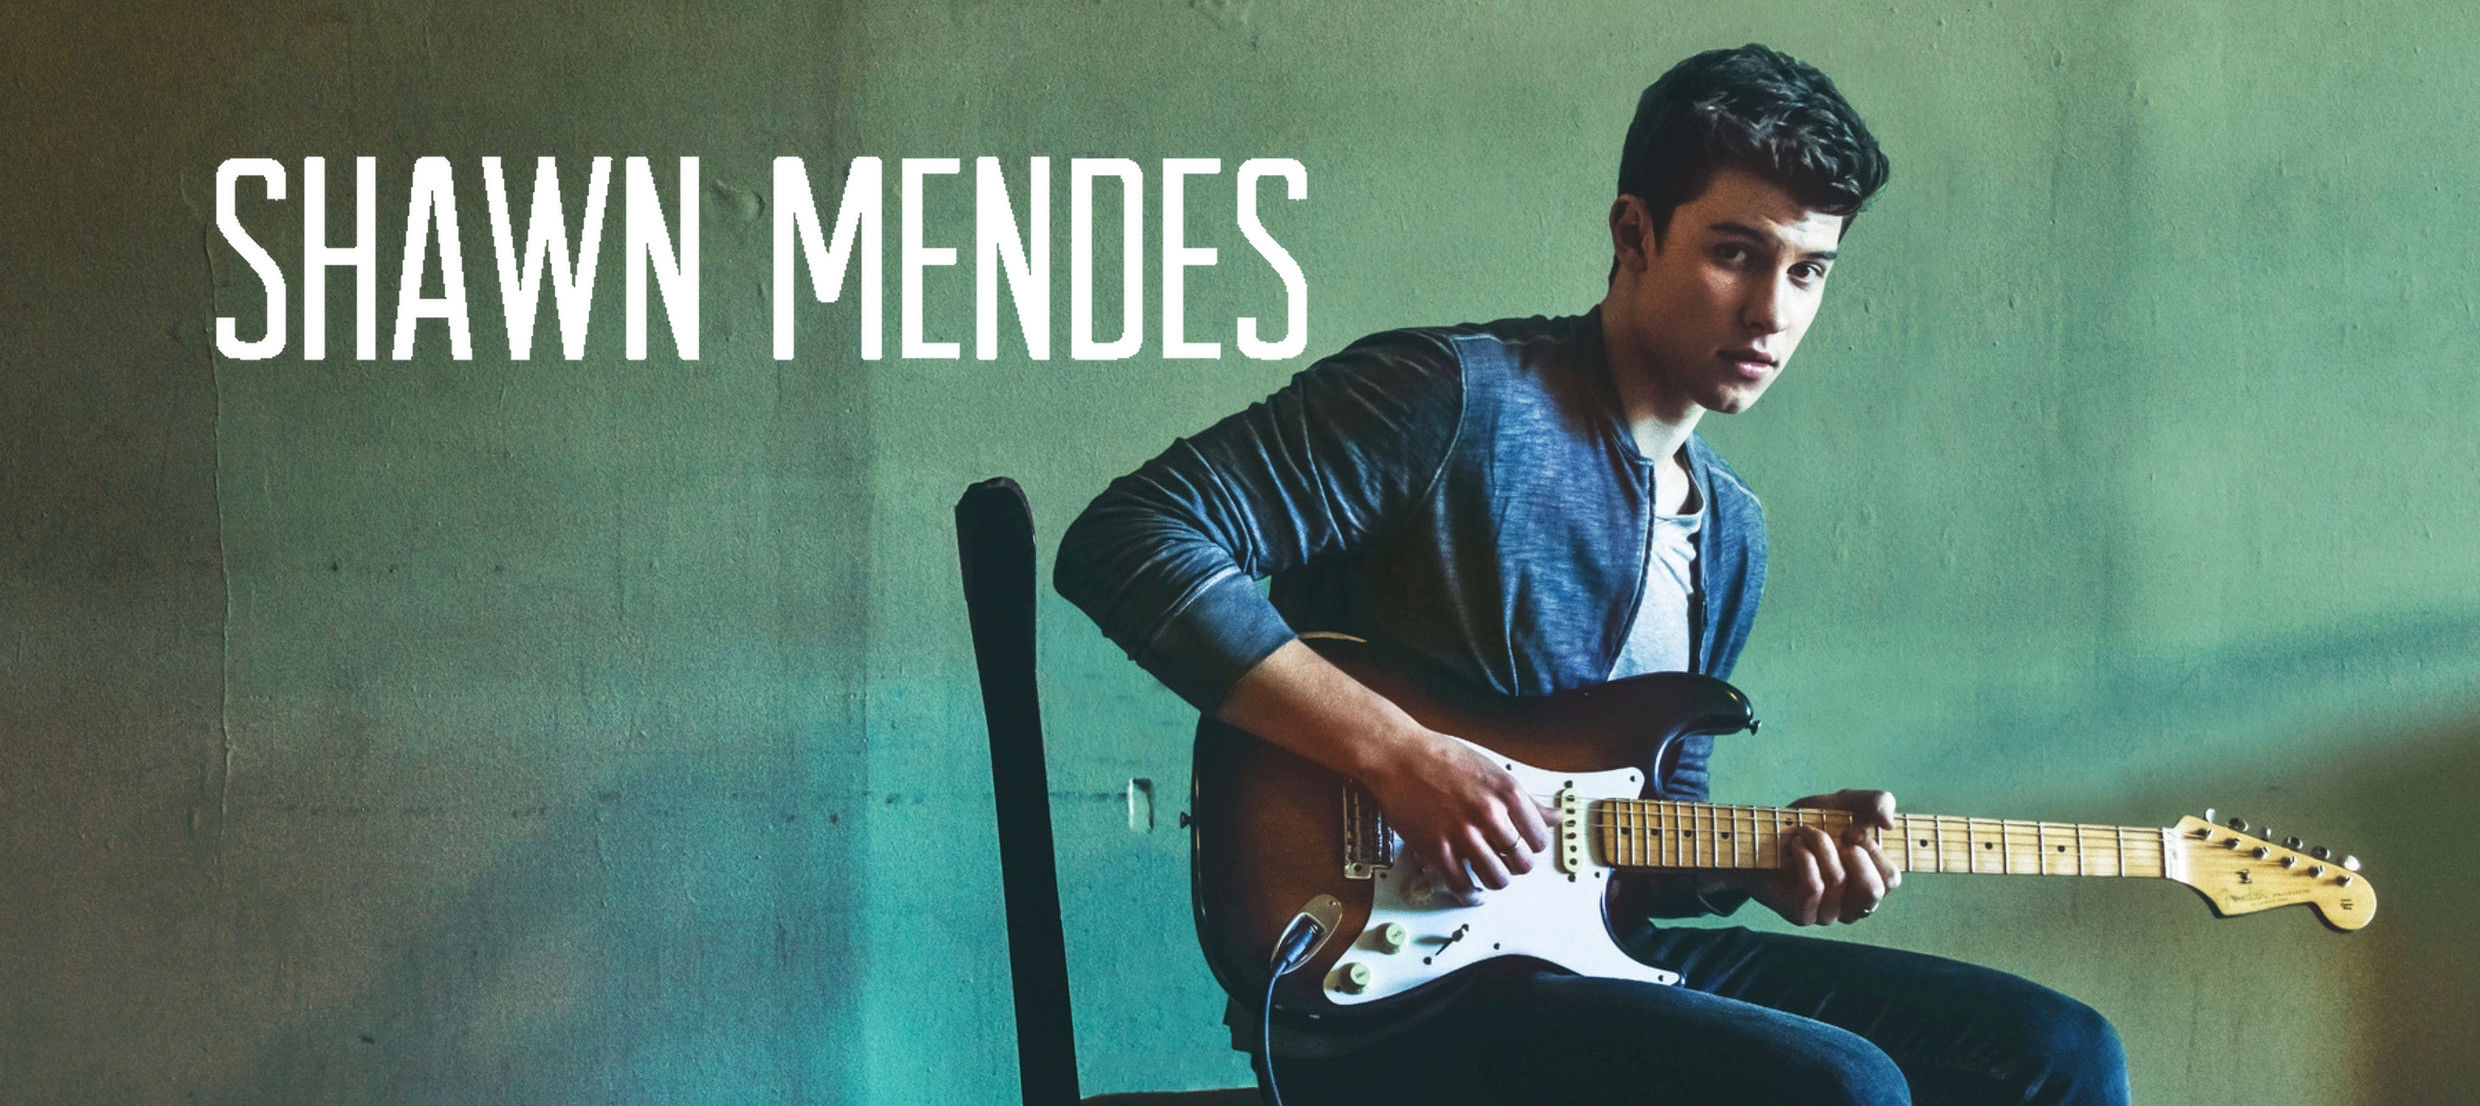 Shawn Mendes 2018 Wallpapers ·①